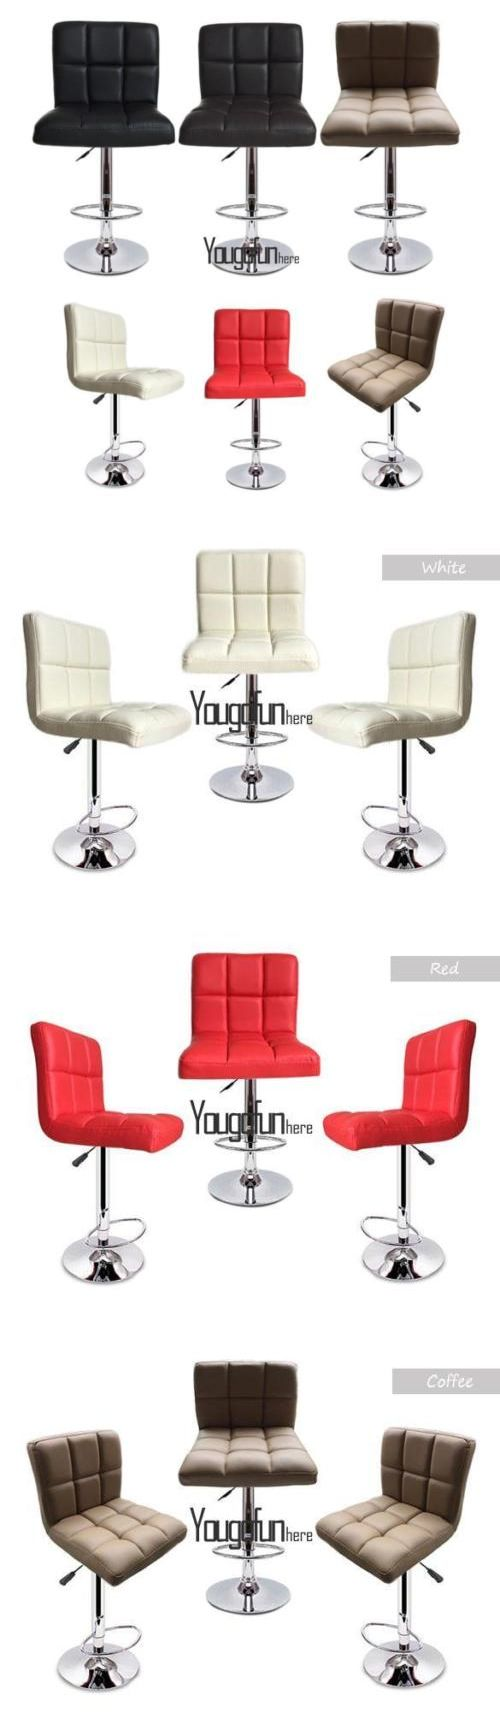 Bean Bags and Inflatables 48319: Fashion Set Of 2 Bar Stools Leather Adjustable Swivel Pub Chair Hydraulic Hyfg -> BUY IT NOW ONLY: $65.93 on eBay!